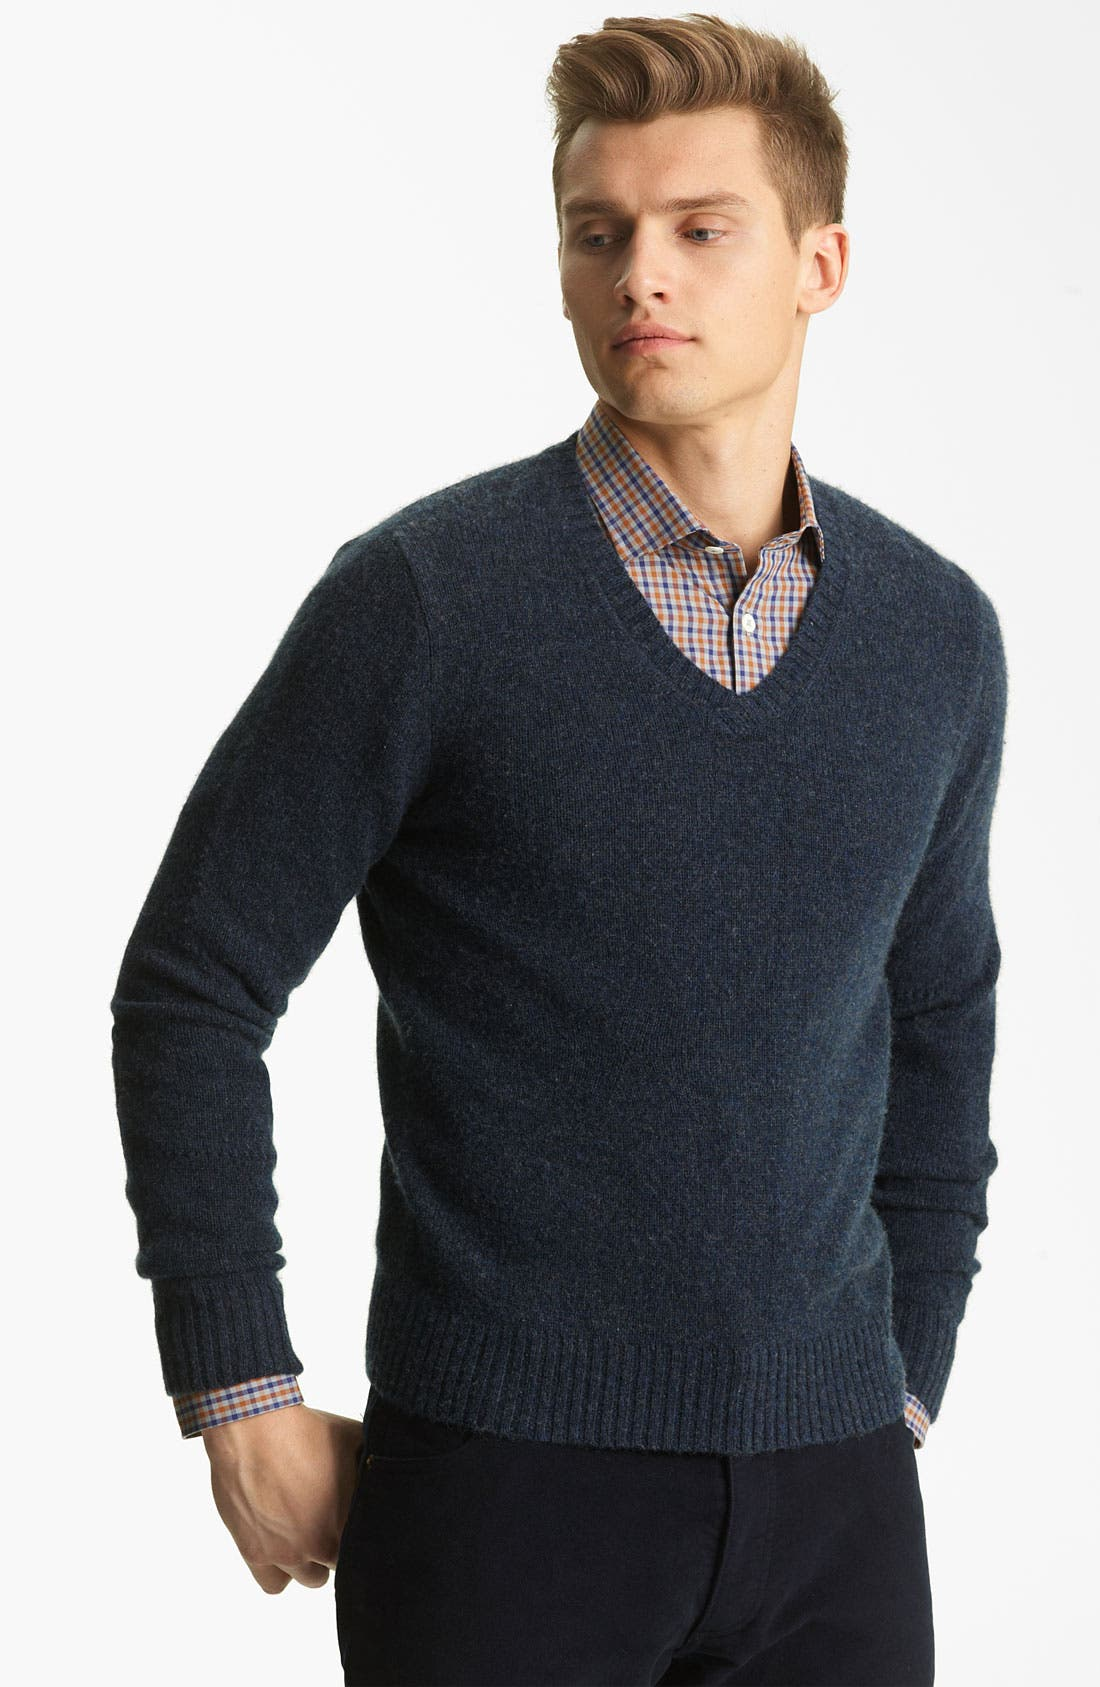 Alternate Image 1 Selected - Billy Reid 'Landry' Cashmere V-Neck Sweater